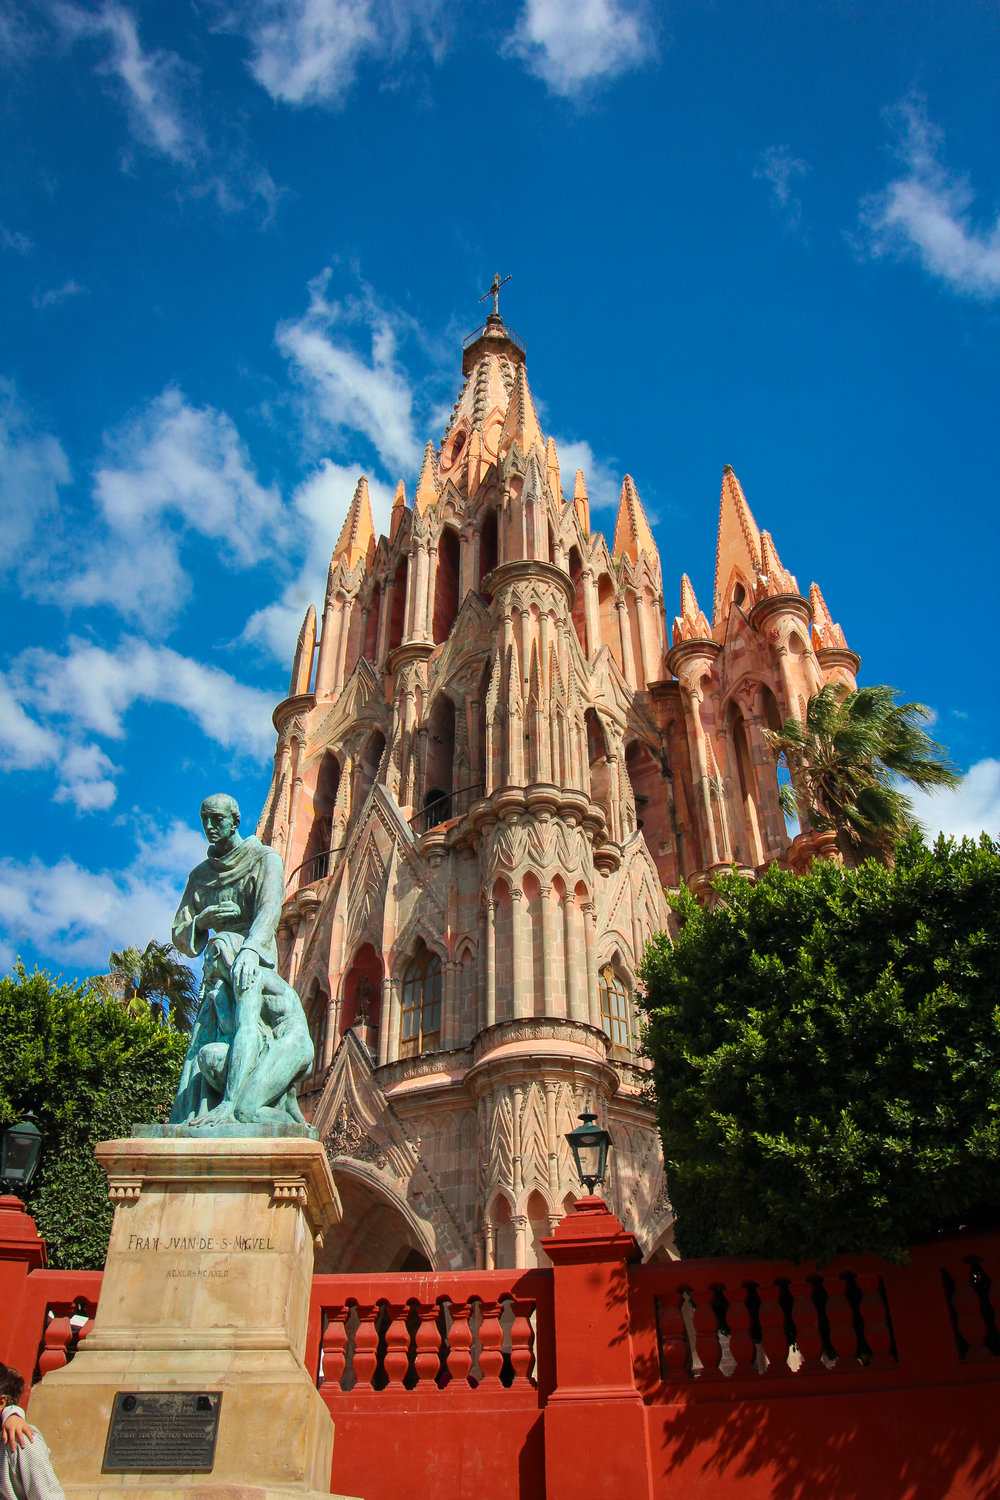 Statue and Church of San Miguel de Allende.